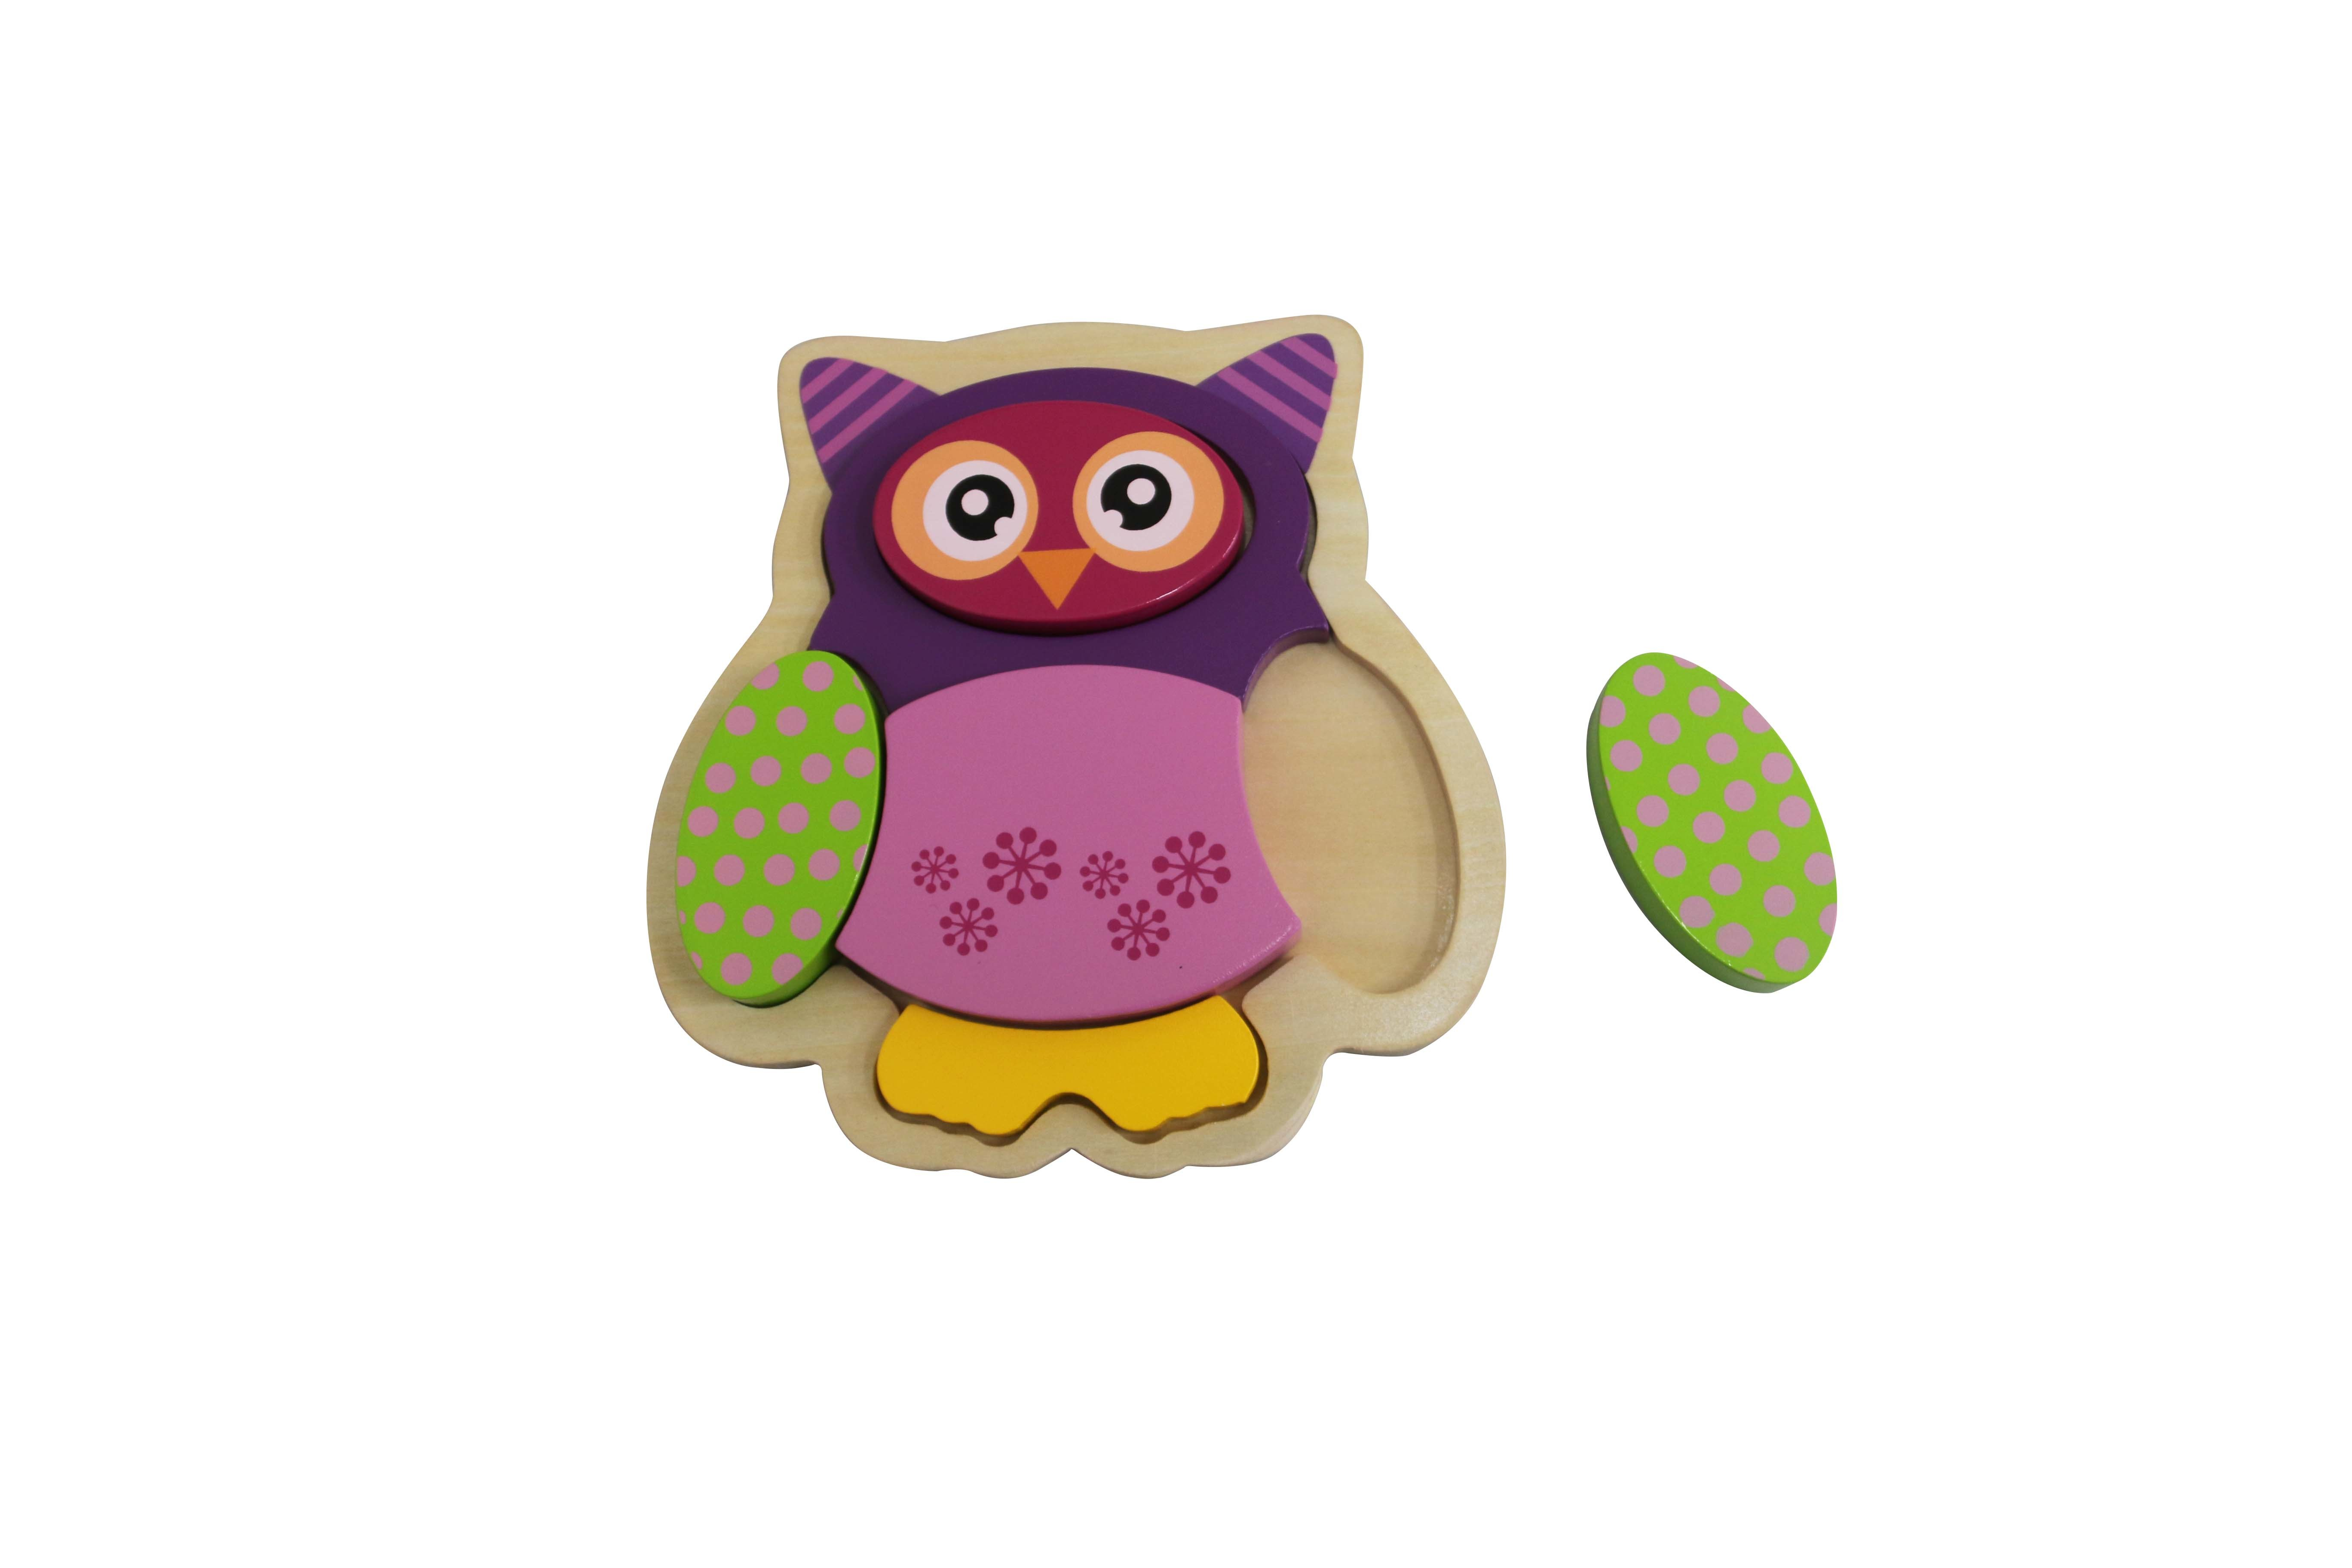 Wooden Owl Puzzle Toy for Kids and Children